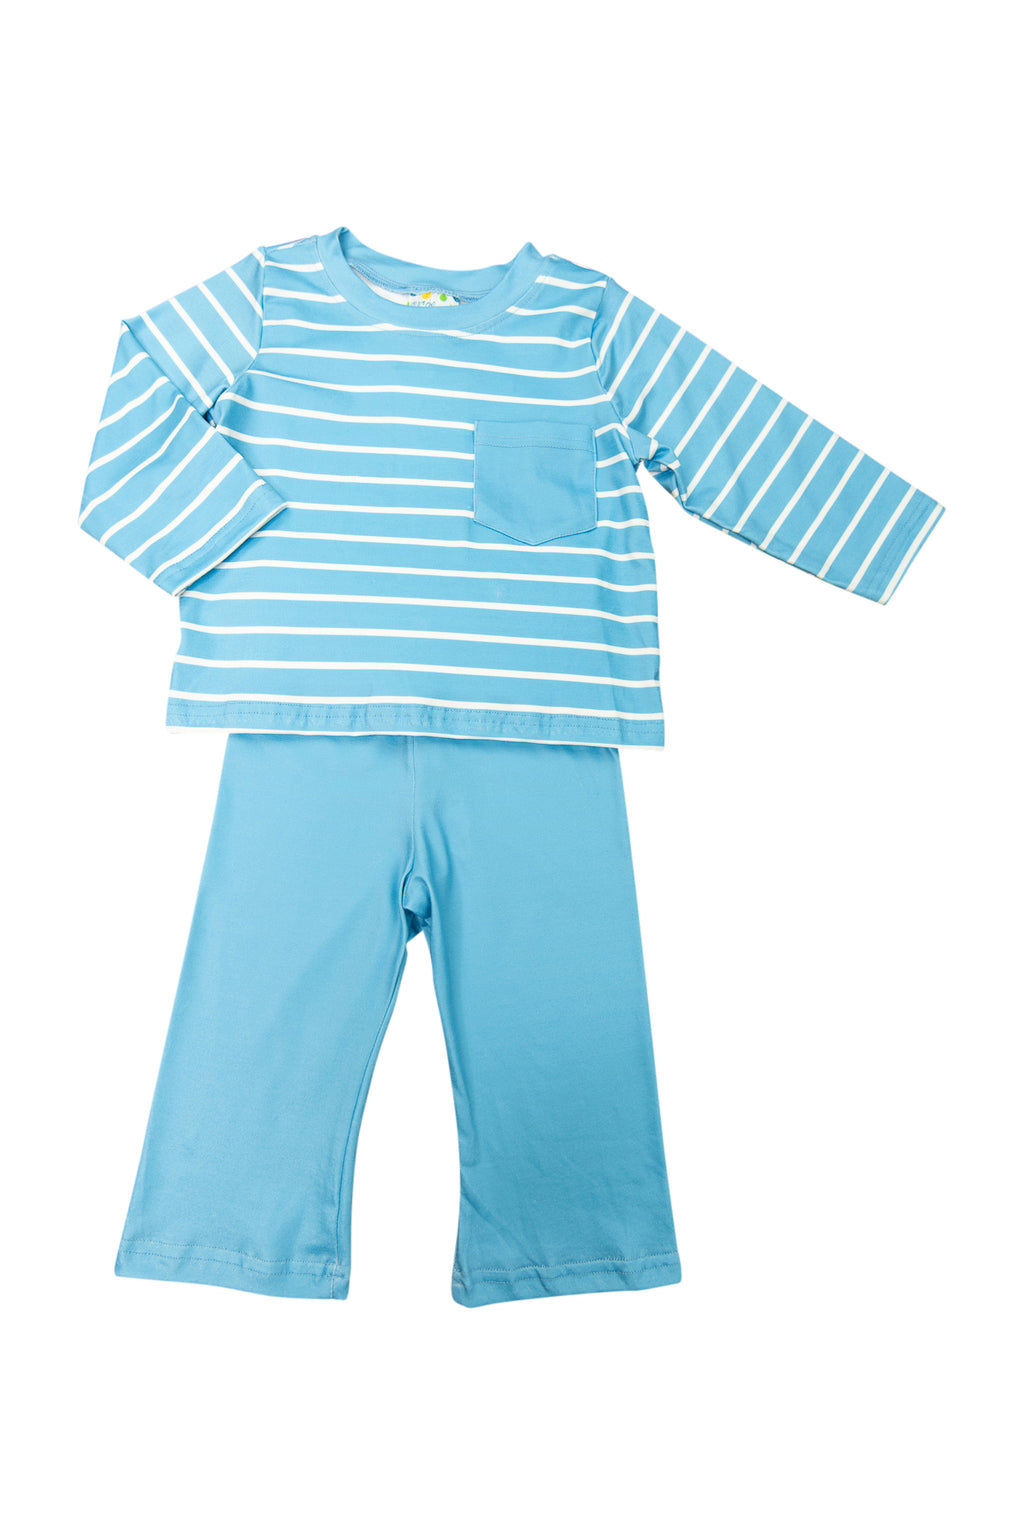 Boys Blue Stripes Pants Set